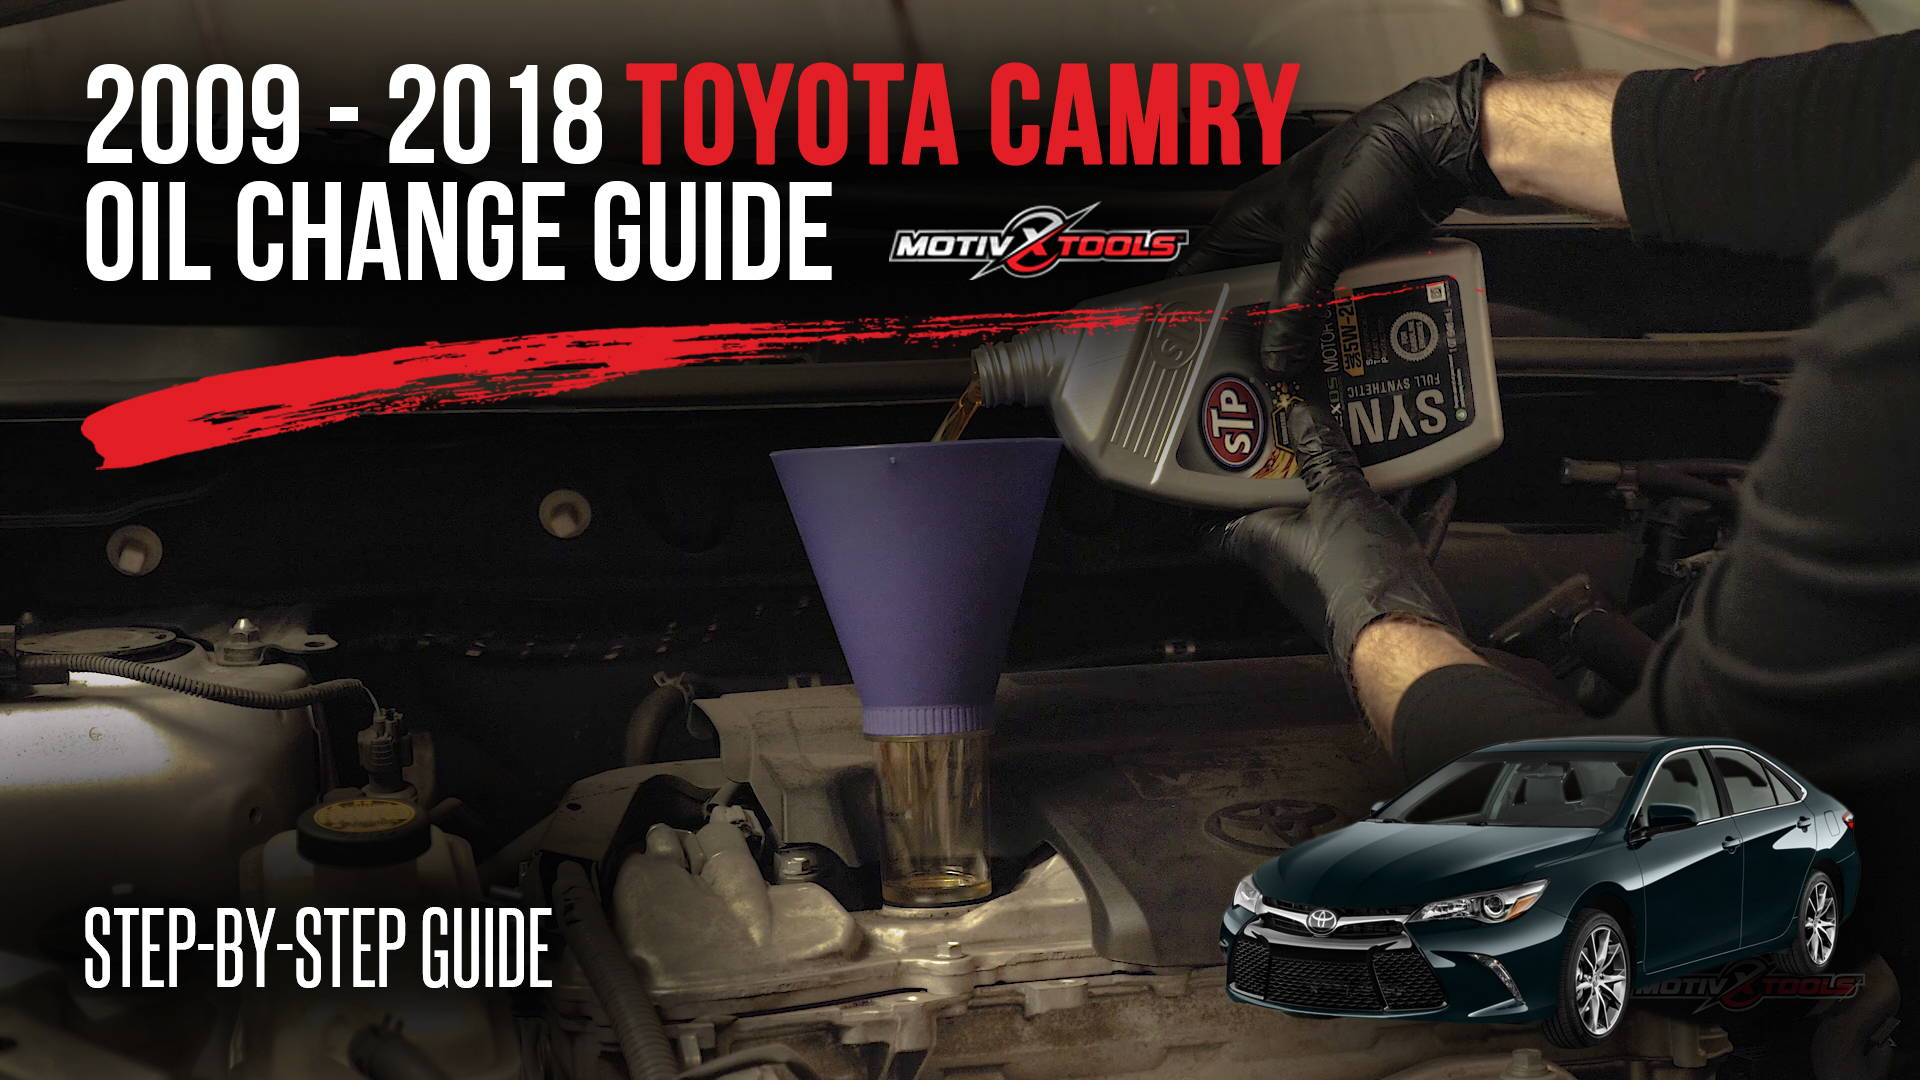 Other Car Manuals 18 2018 Toyota Camry owners manual BRAND NEW ...